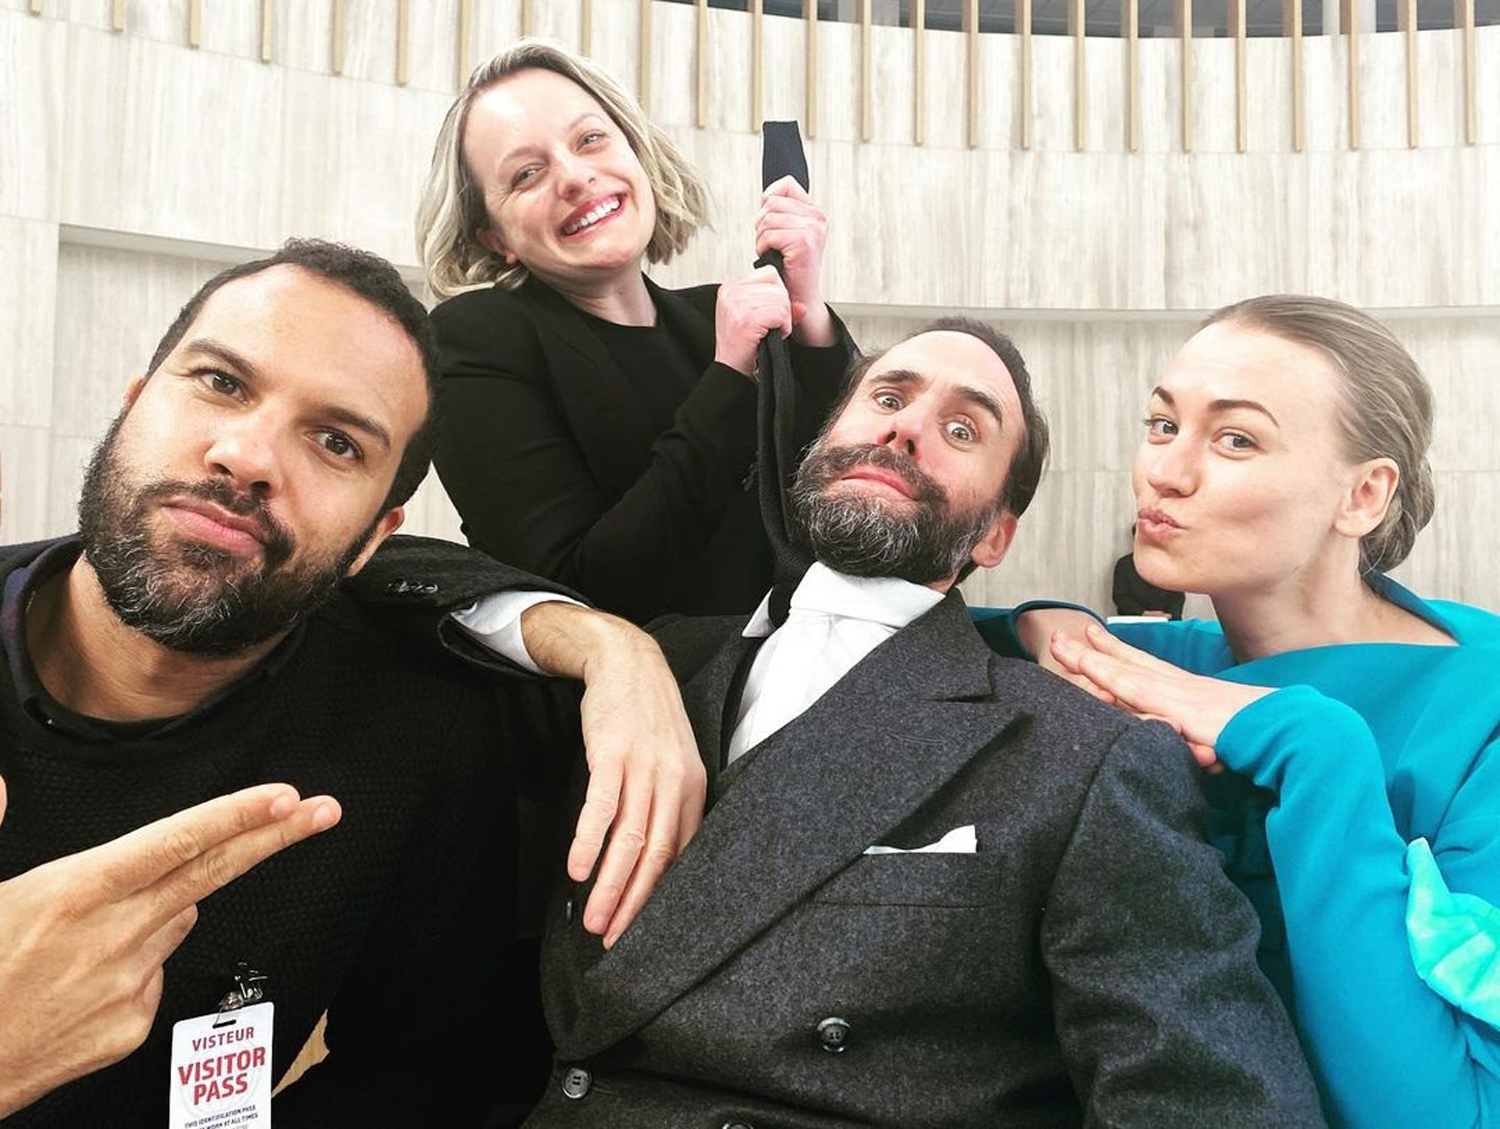 Handmaid 's Tale Cast Poses for Silly Selfie After Shocking-and Bloody-Season 4 Finale